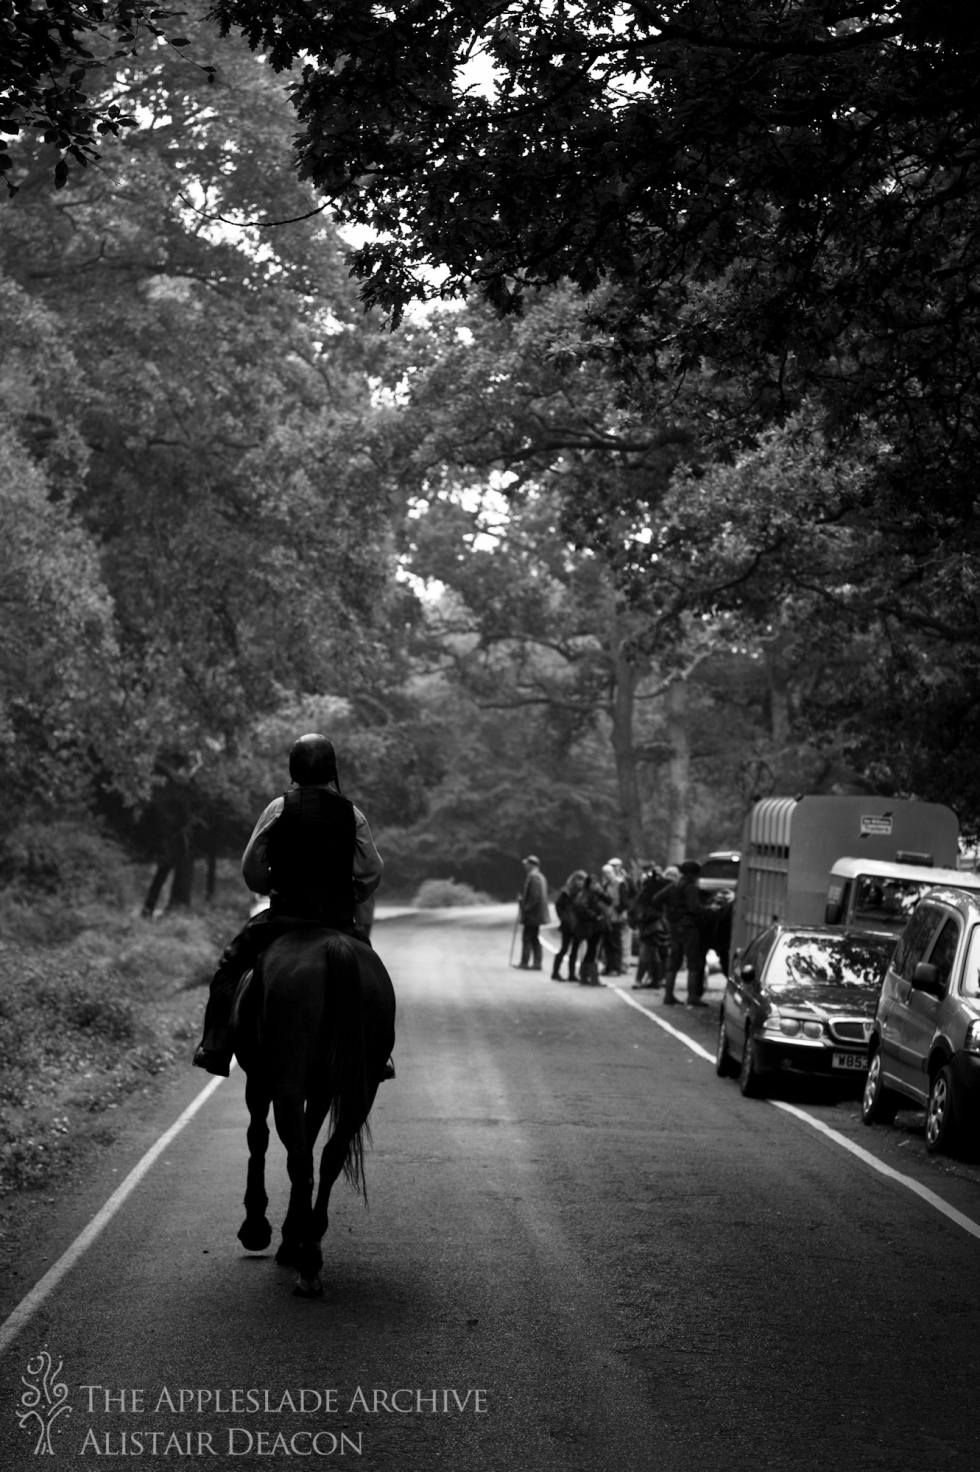 Andrew Napthine riding out on the Stoney Cross Drift, Nr. Stoney Cross, New Forest, Hampshire, 18th Oct 2013